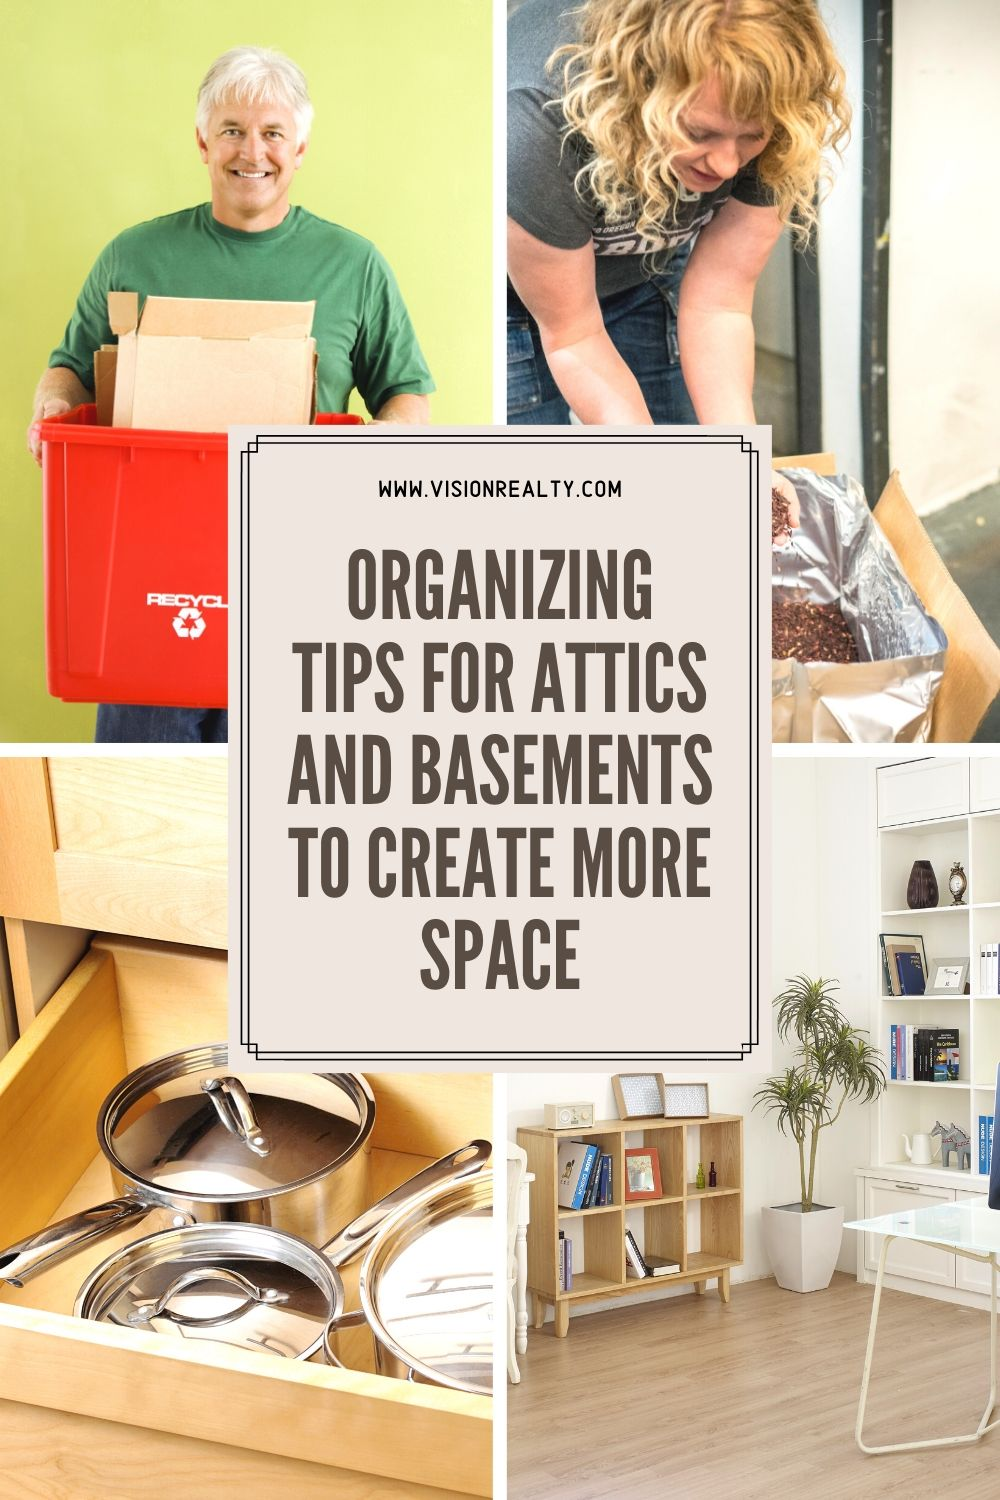 Organizing Tips for Attics and Basements to Create More Space